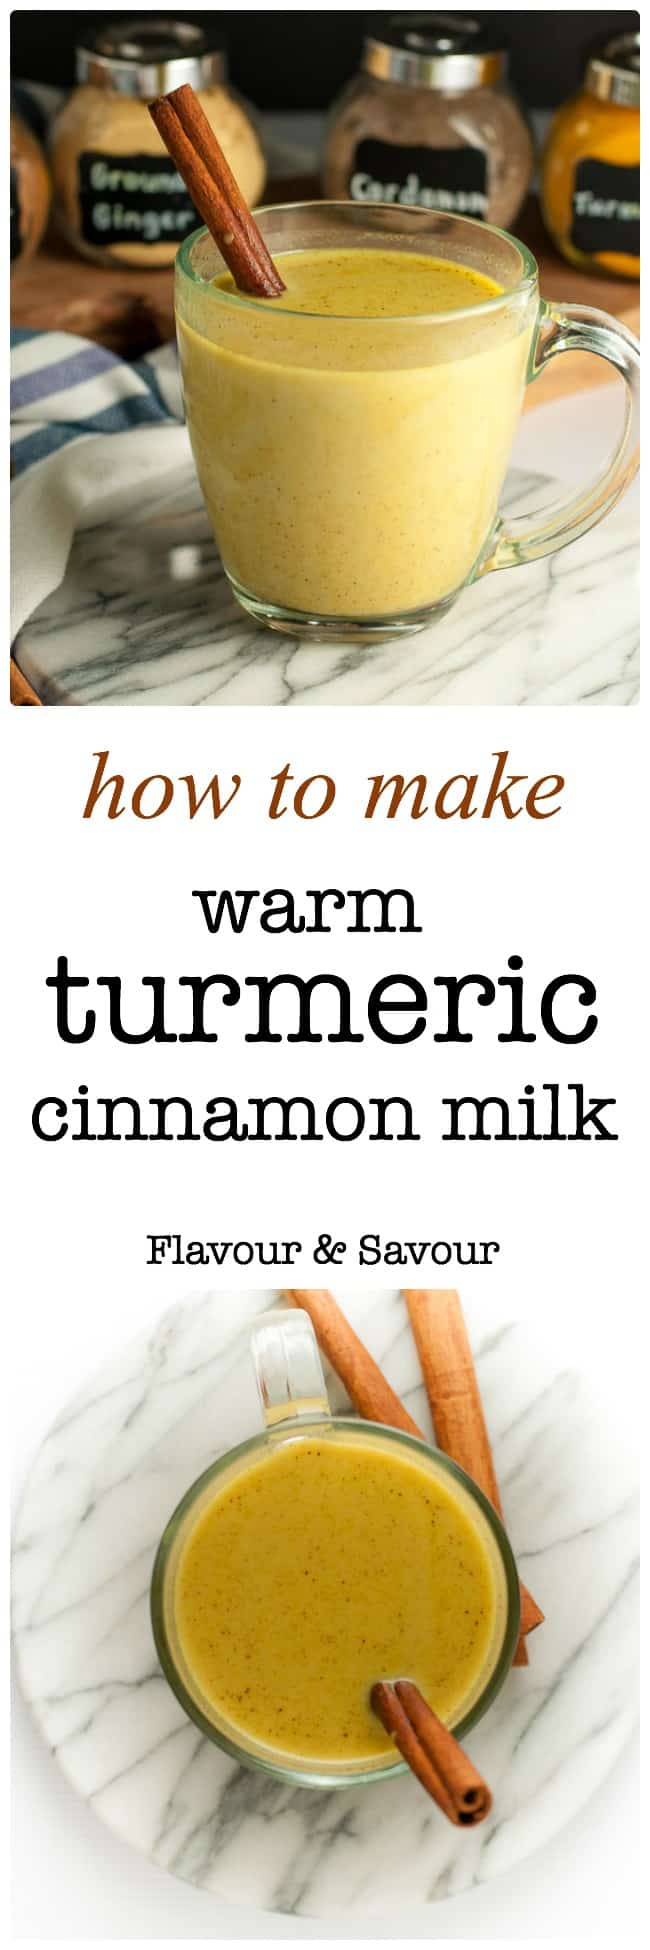 Easy instructions for how to make Warm Turmeric Cinnamon Milk, a healthy anti-inflammatory, anti-oxidant drink that may also help you sleep! Includes gift tags for Turmeric Spice Mix too. #goldenmilk #cinnamonmilk #turmericmilk #turmericmylk, #turmericspice  #howtomake